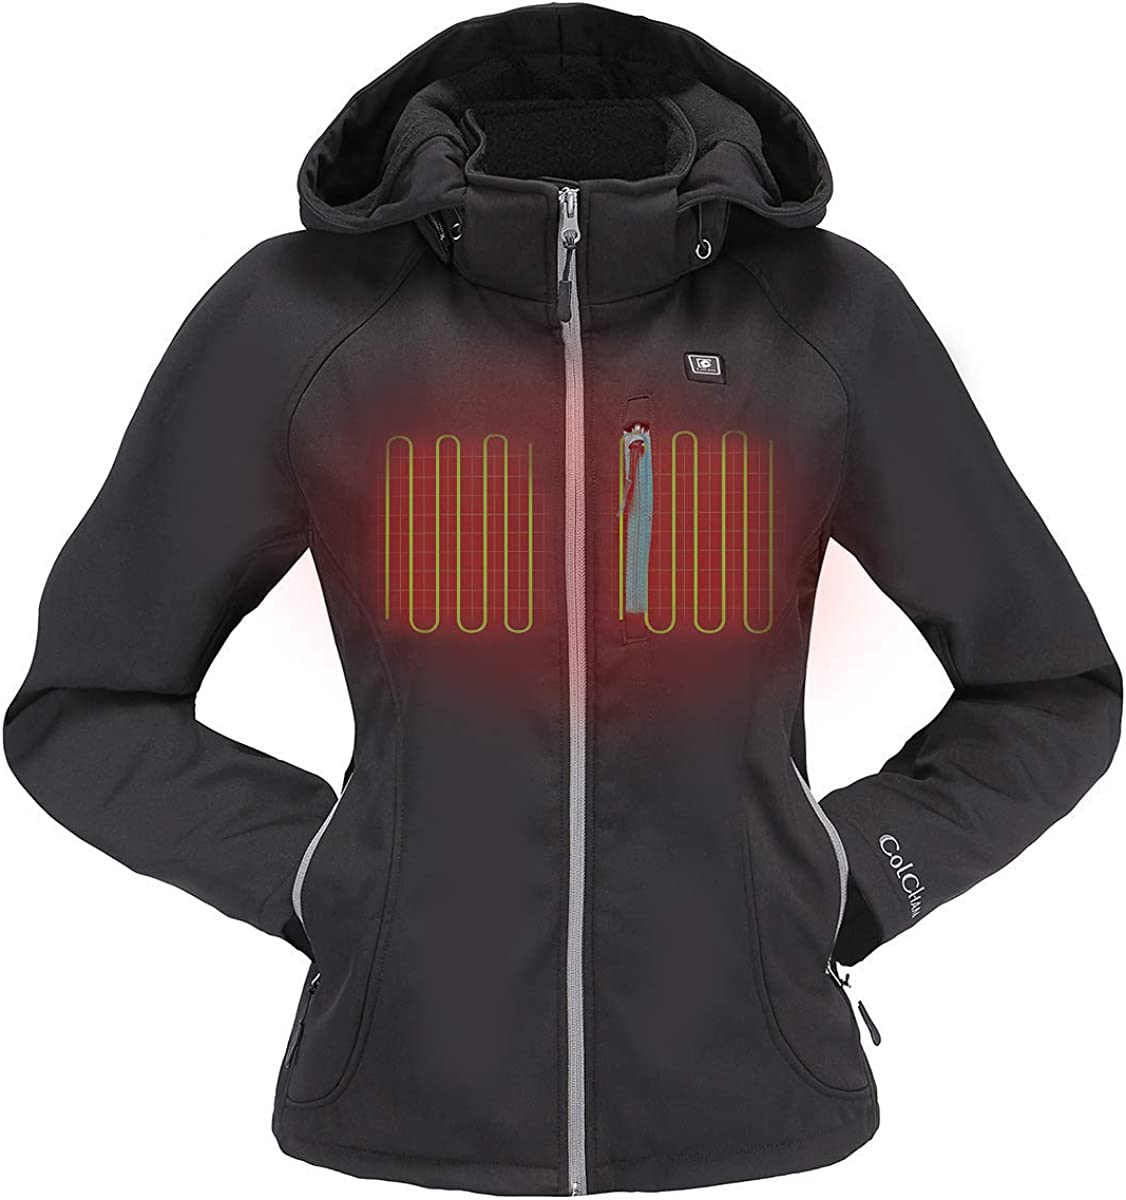 COLCHAM Heated Jacket for Women with Detachable Hood and Battery Pack Waterproof and Windproof: Clothing